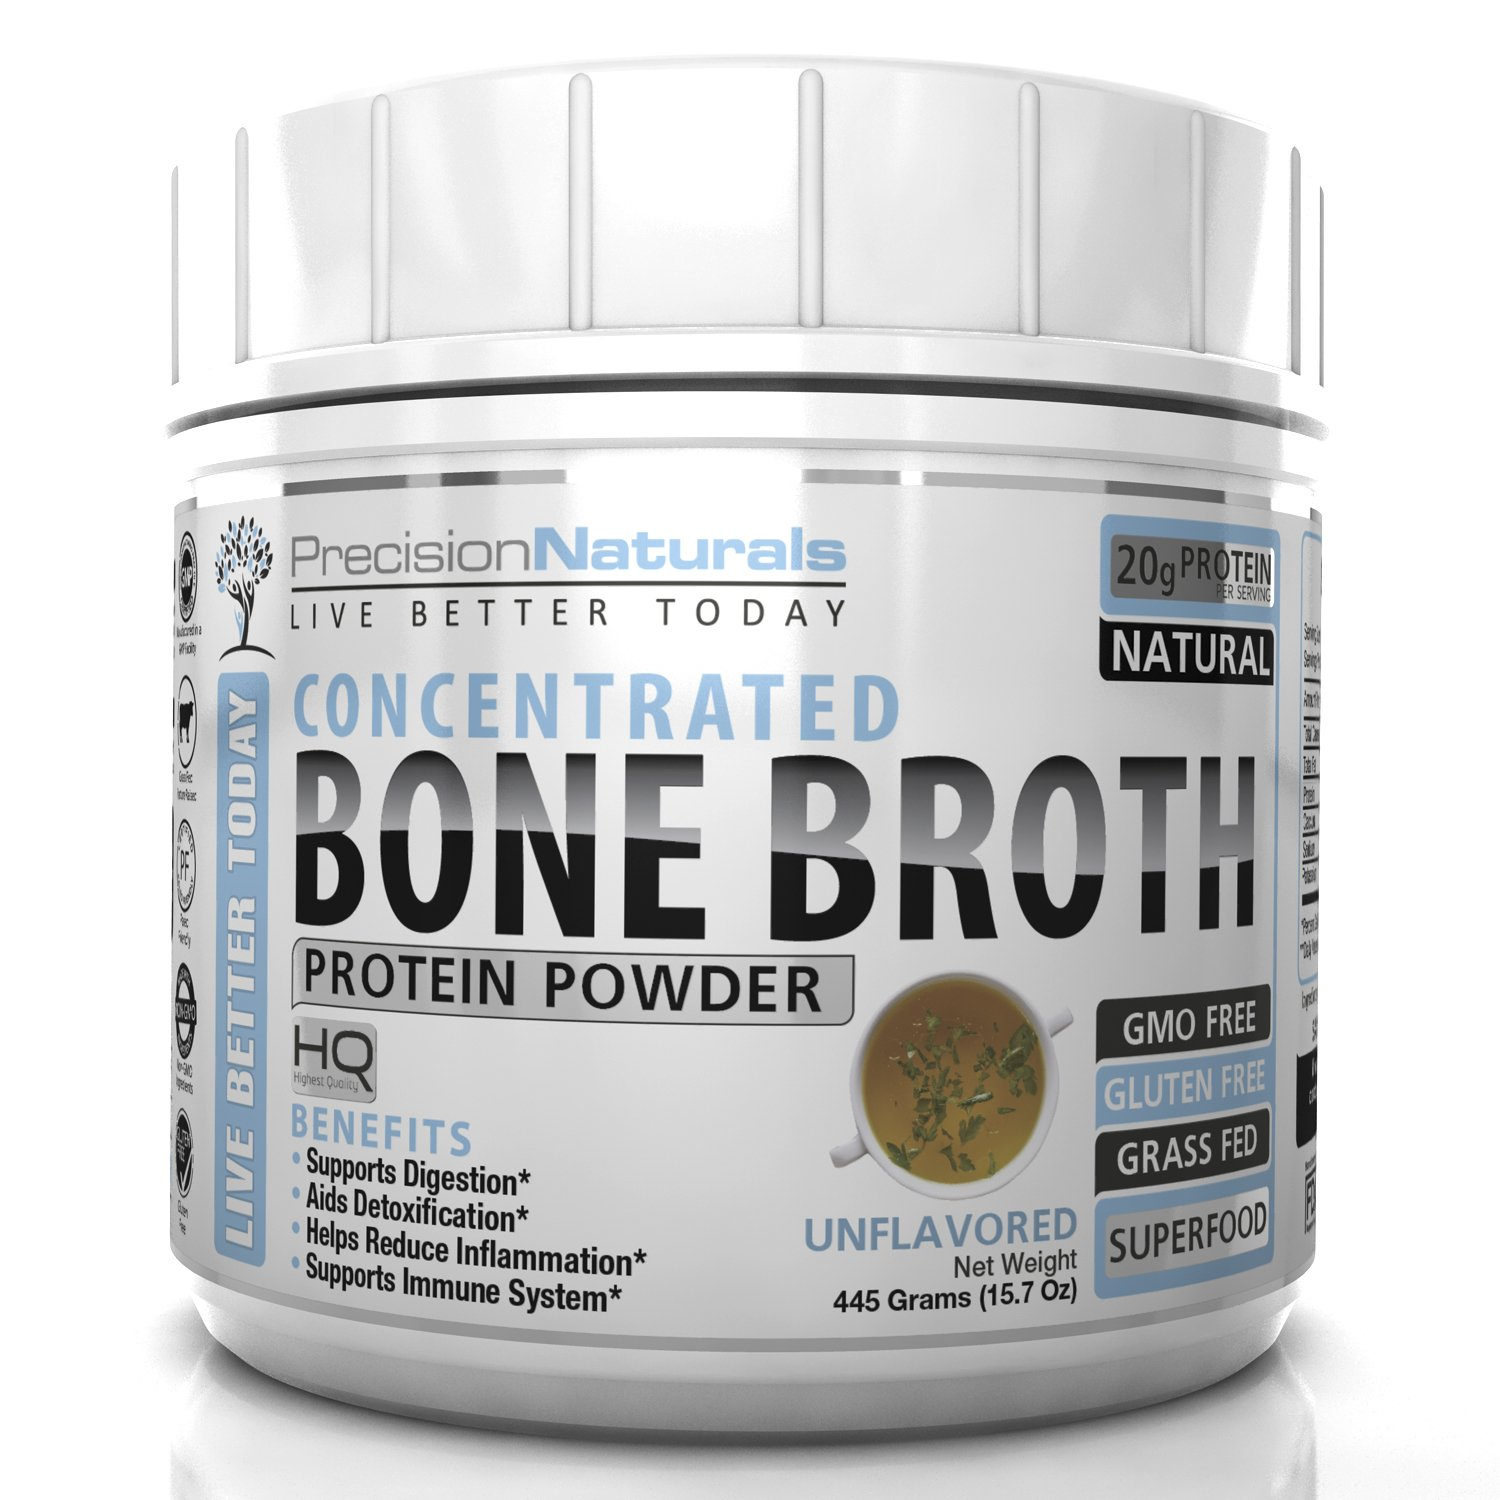 Bone Broth Protein Powder - Certified Paleo Friendly - Natural NON GMO Grass Fed Beef - Gluten Free Unflavored Ancient Form of Nutrition Made Modern 445g/15.7oz 20 Servings. Premium Collagen Peptides